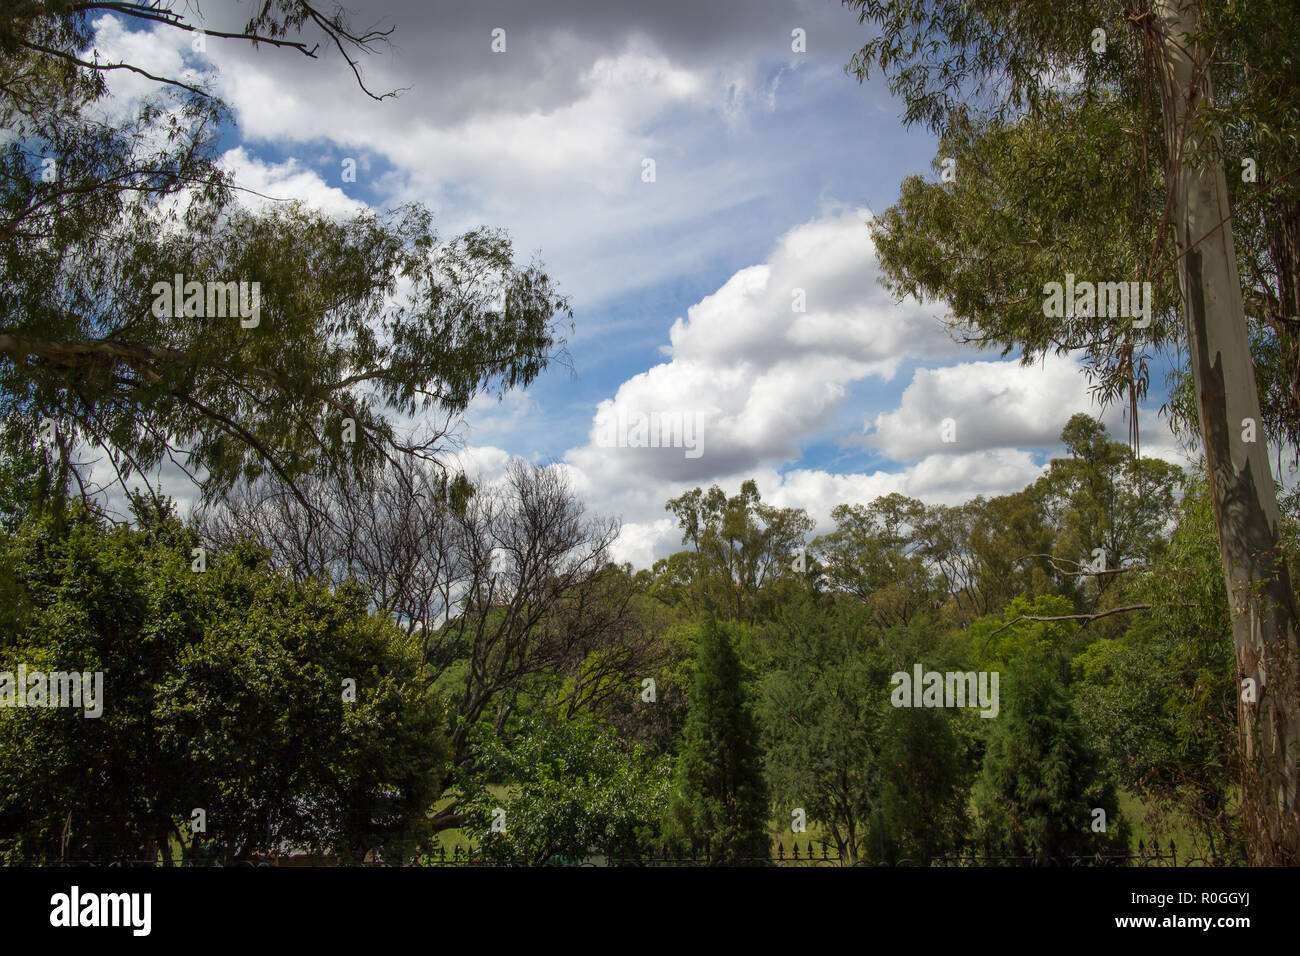 Jan Smuts house in Pretoria, South Africa - Stock Image